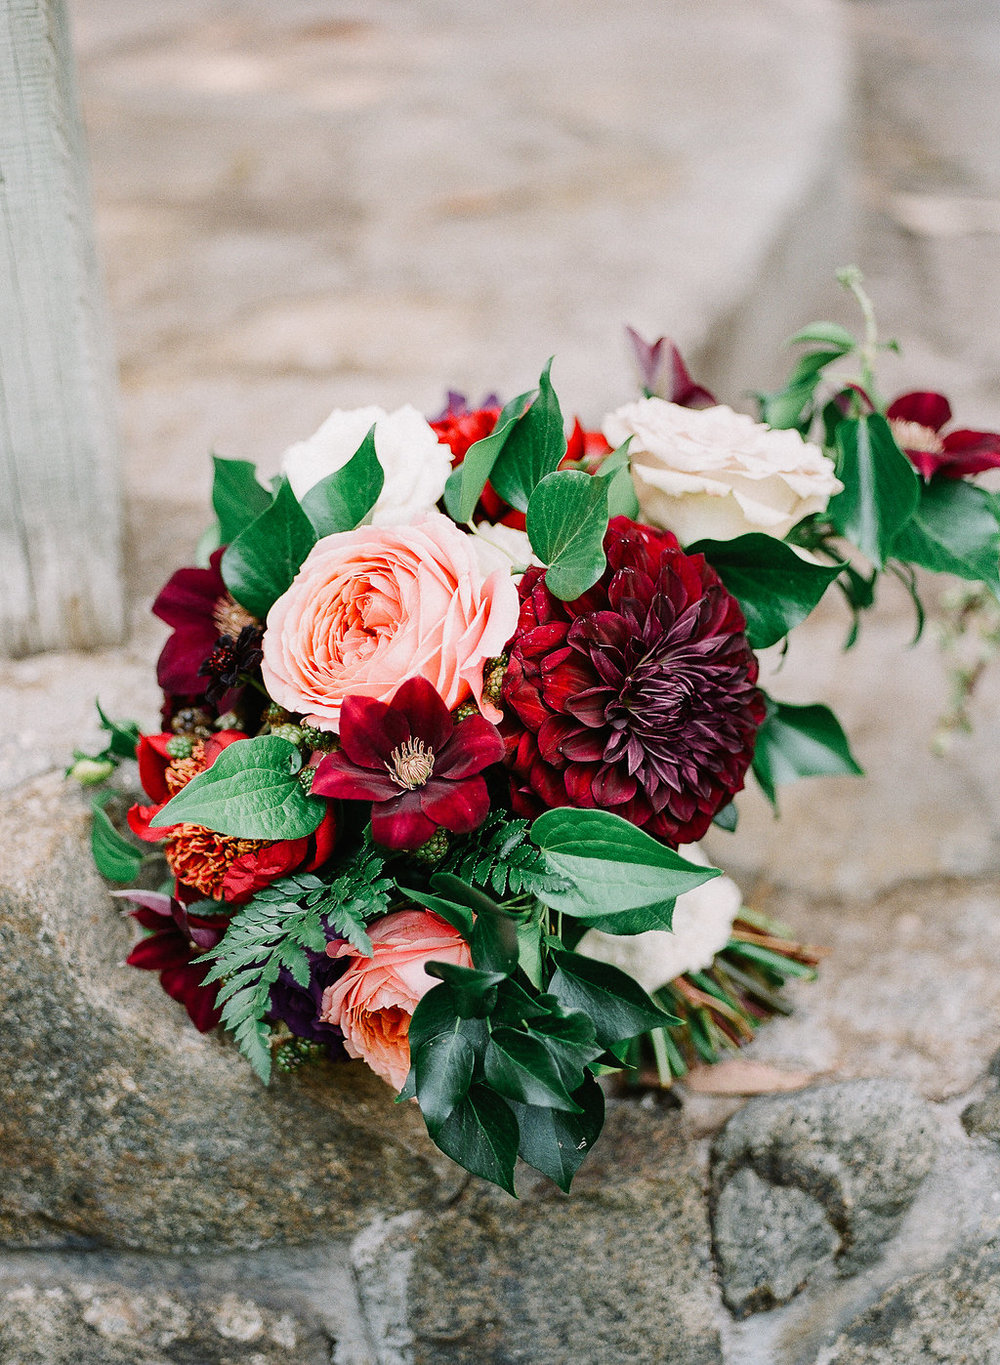 Romantic, jewel tone bridal bouquet of romantic antike garden roses, dahlias and clematis by Compass Floral | Fallbrook Treehouse, Fallbrook